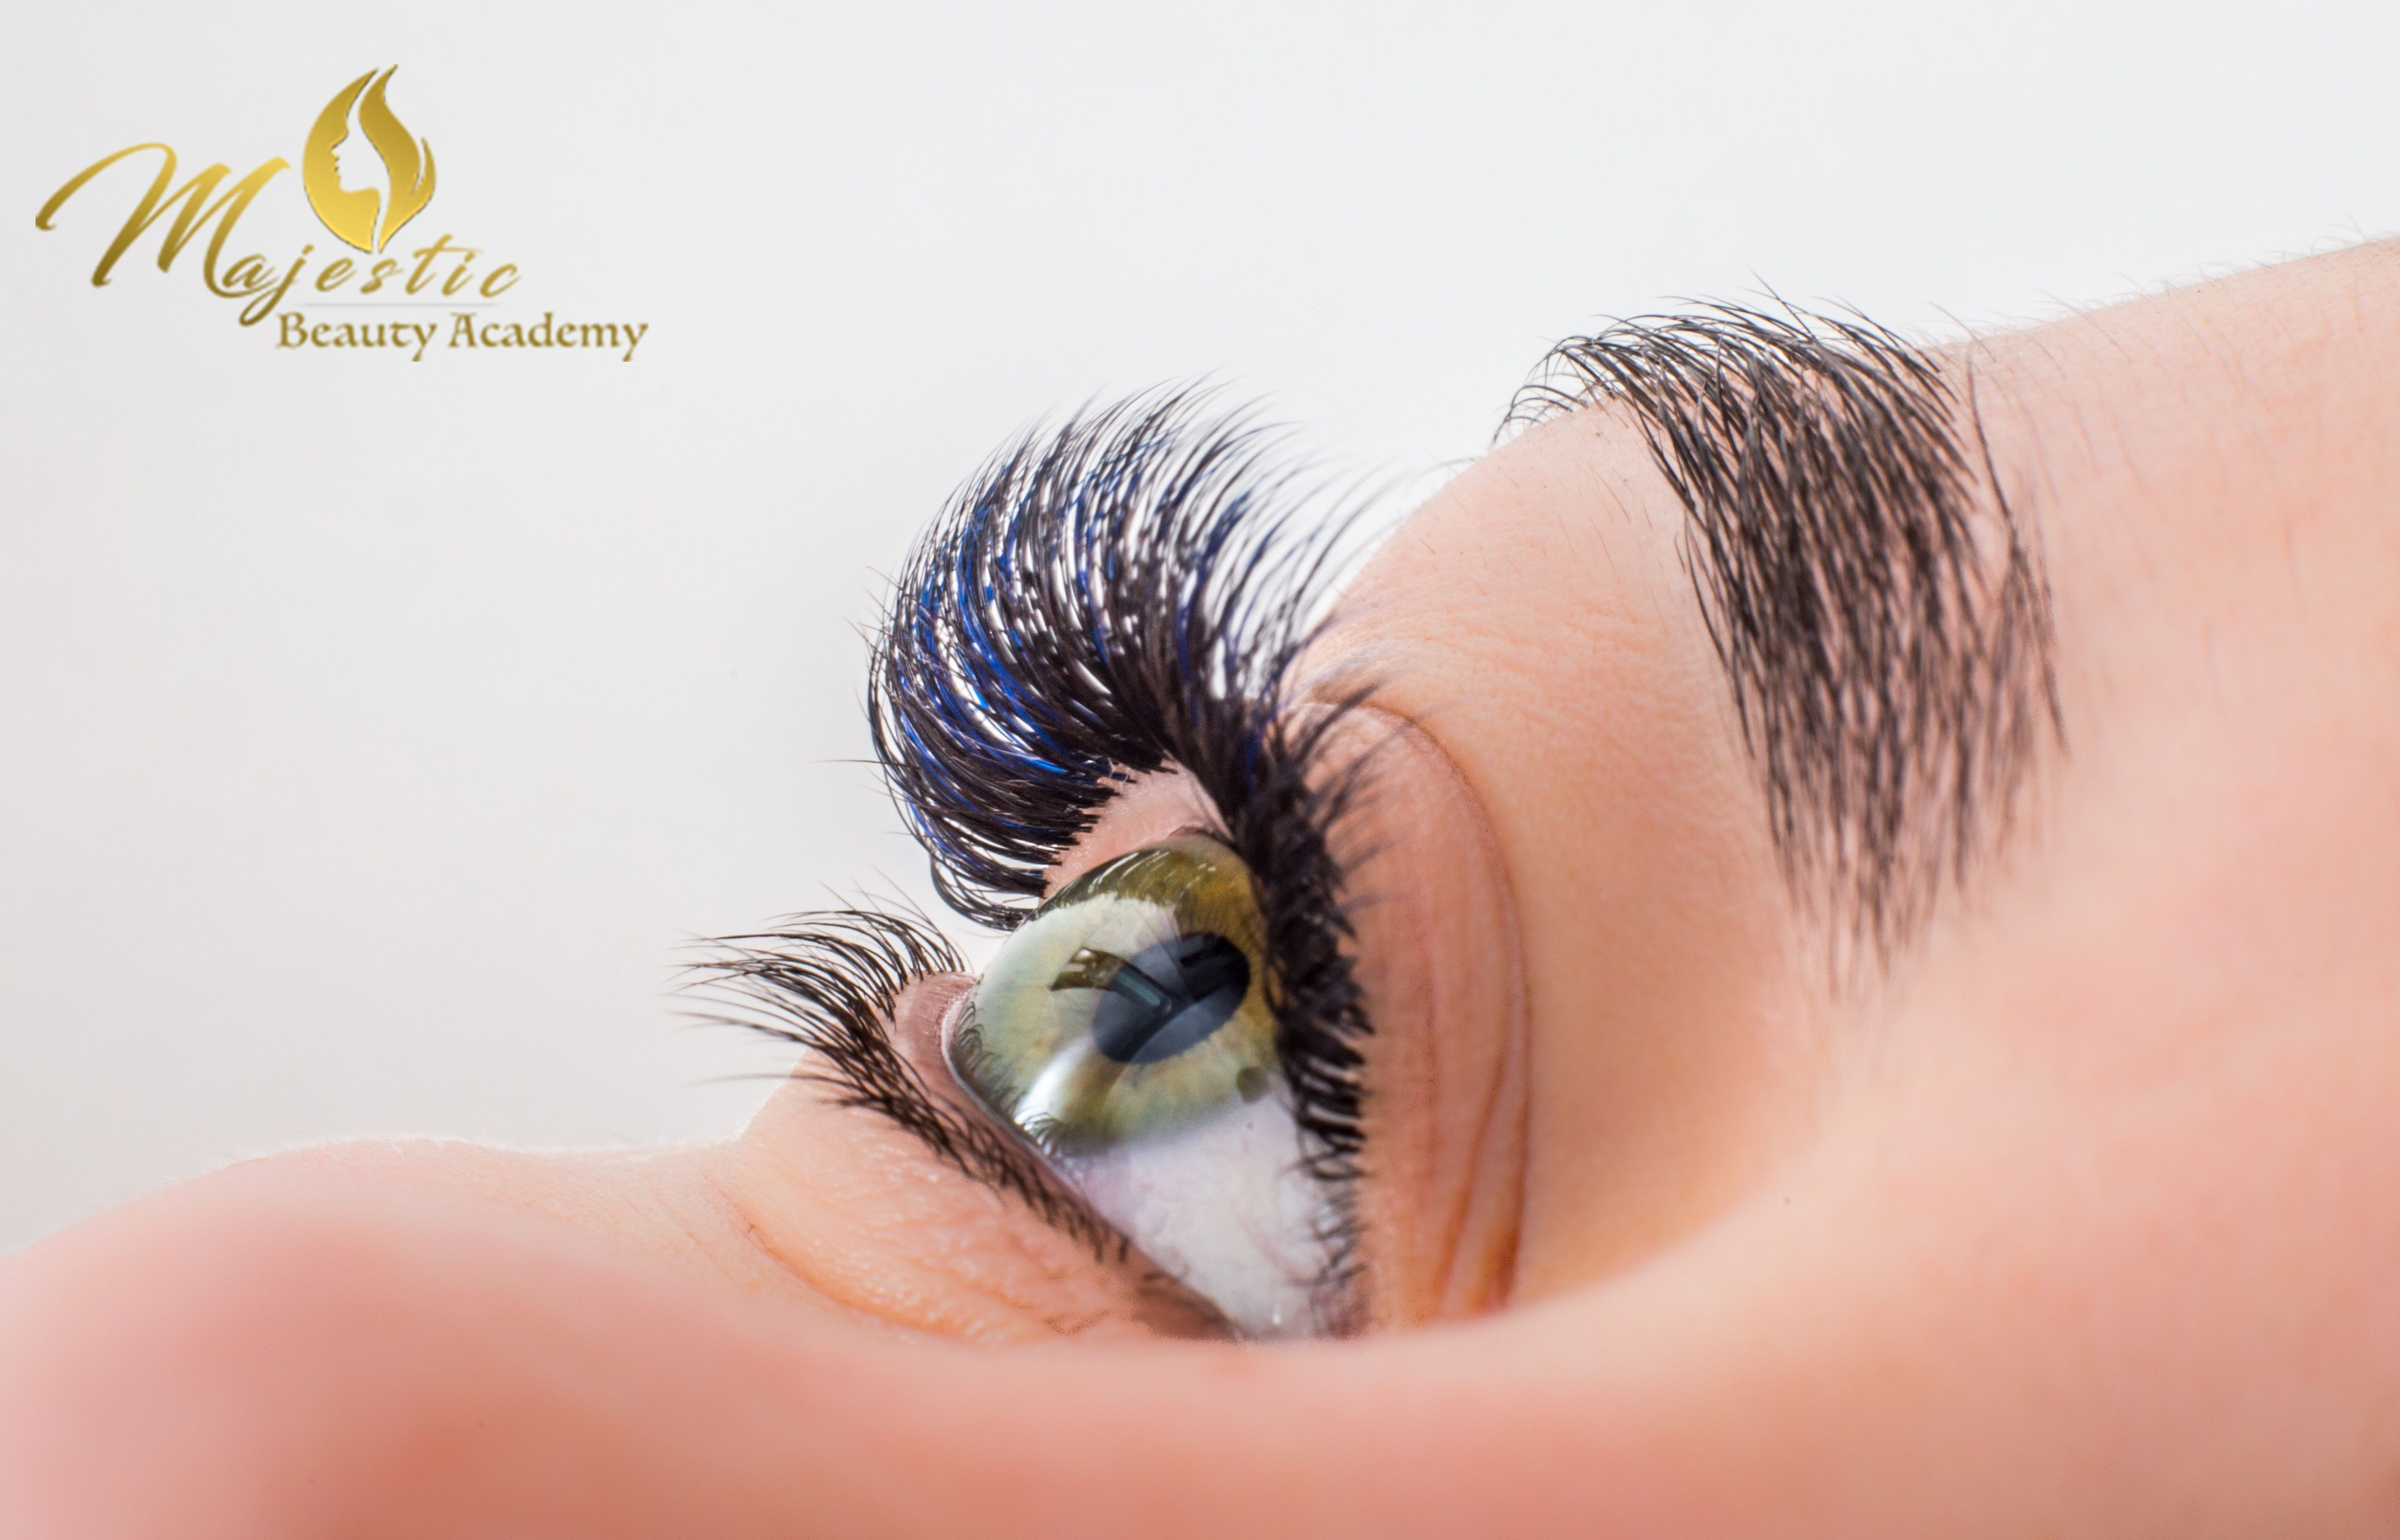 c2ea904a123 Find advance eyelash extension courses, training centers, institutes classes  at Majestic Beauty Academy in Japan. #majesticbeautyacademy #beauty #makeup  ...